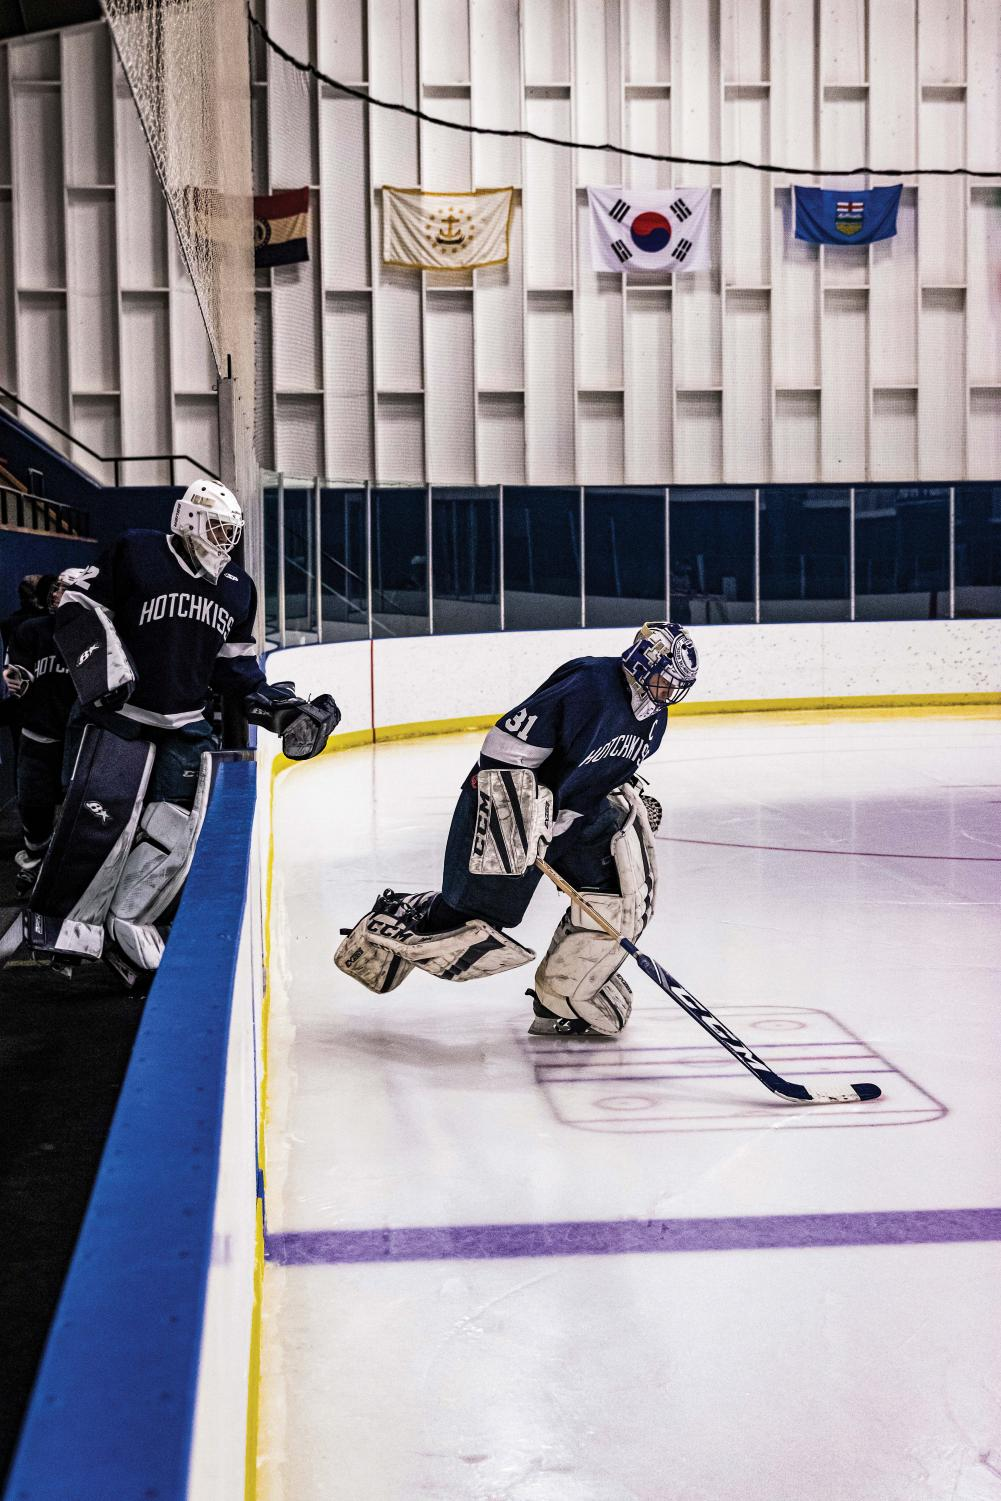 Henry Wilder '20 posted 35 saves in the Boys Varsity Hockey team's most recent game.